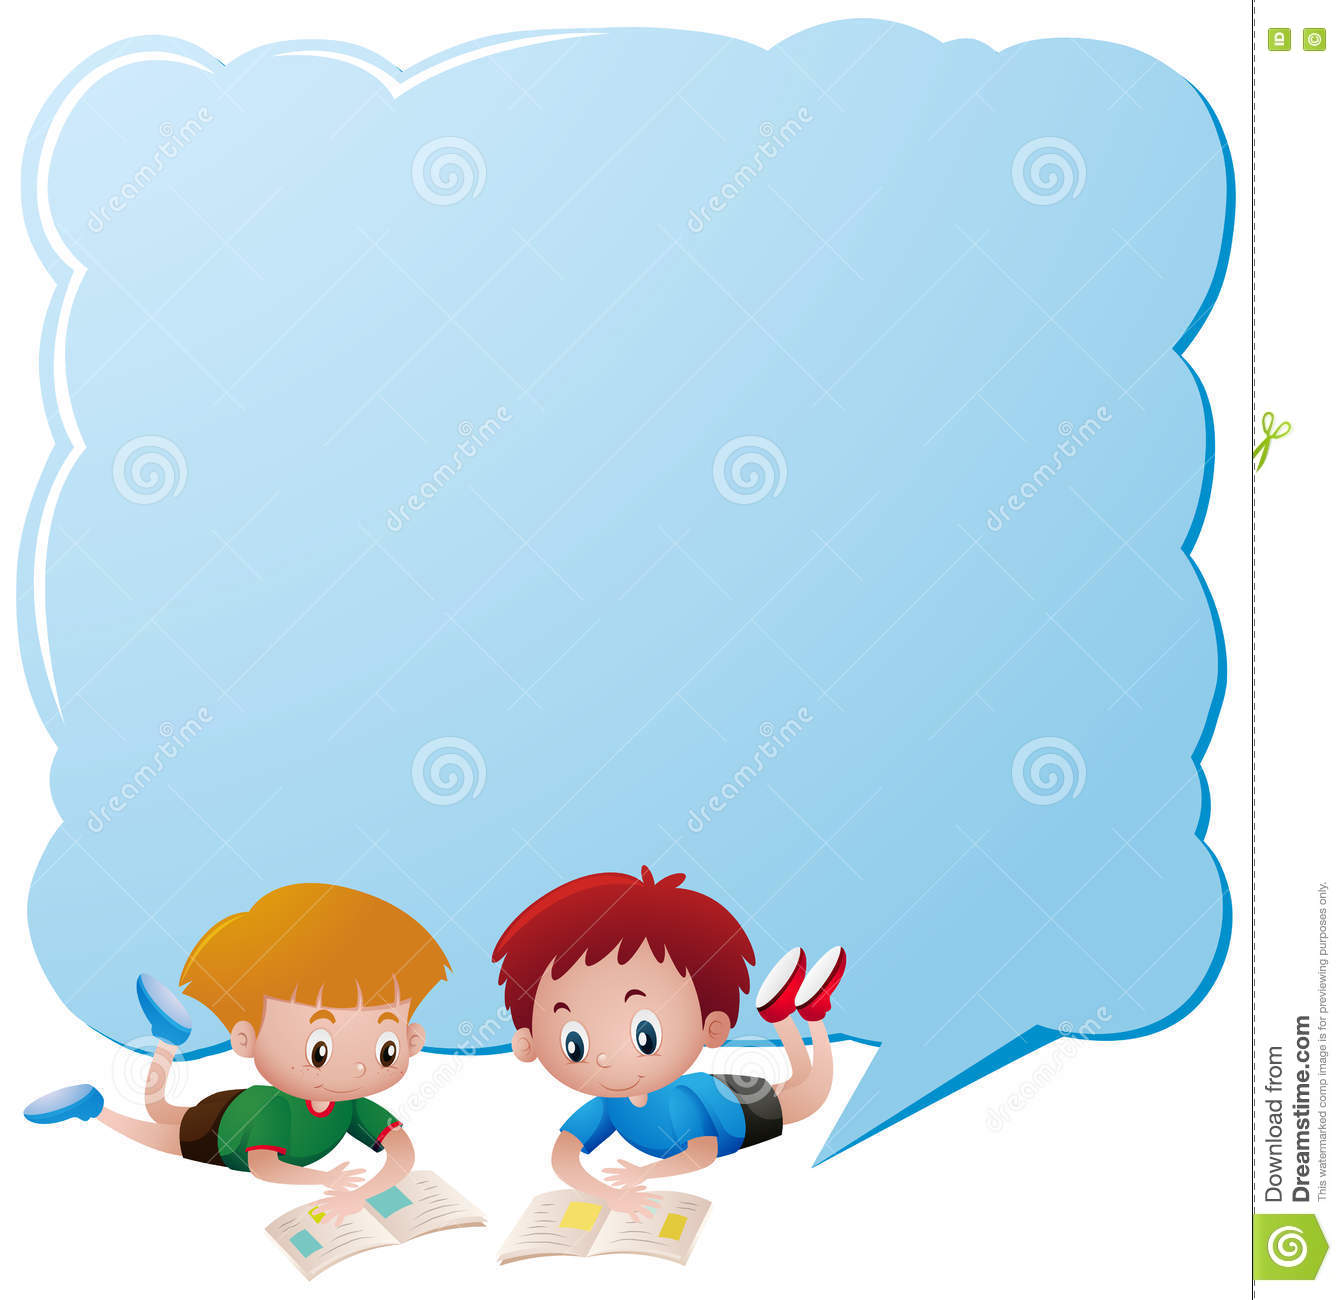 Border Template With Two Boys Reading Books Stock Vector ...